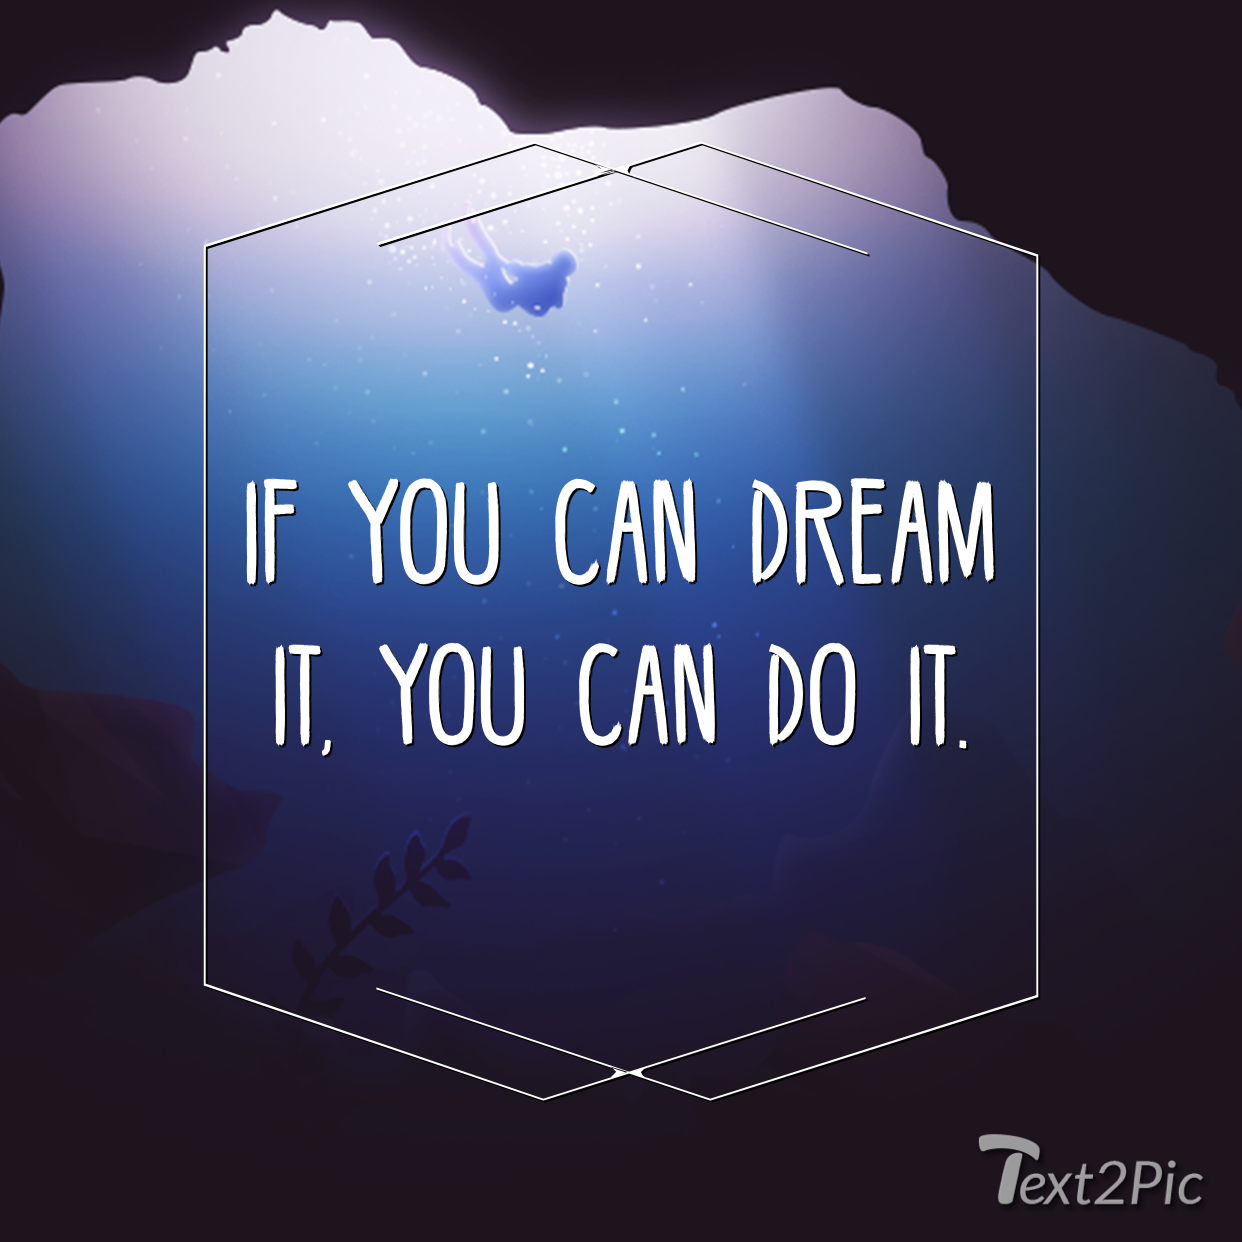 Image from Text2Pic, an Instagram text and quote maker app